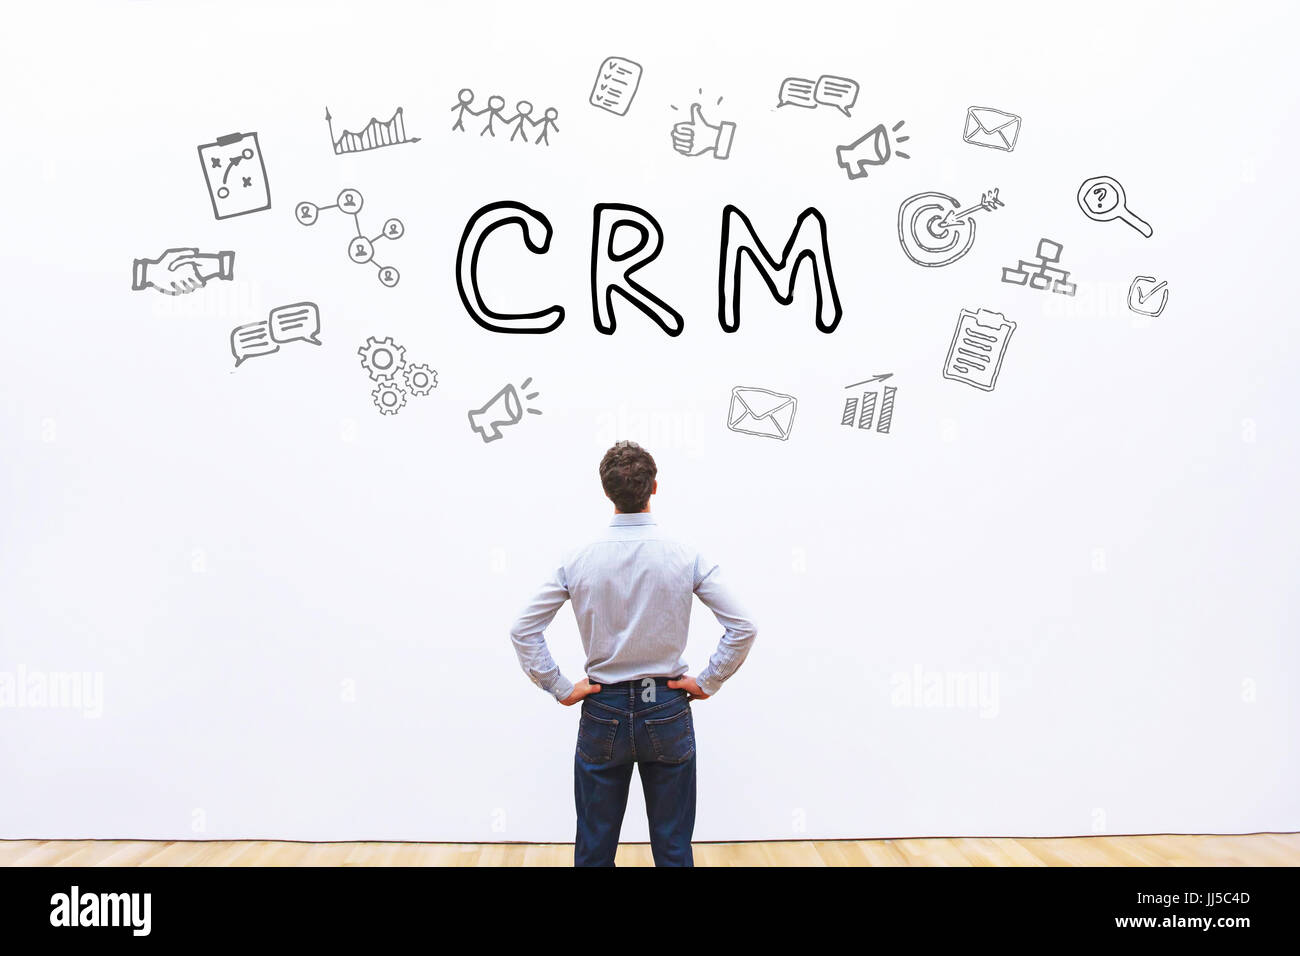 CRM concept on white background, Customer Relationship Management - Stock Image